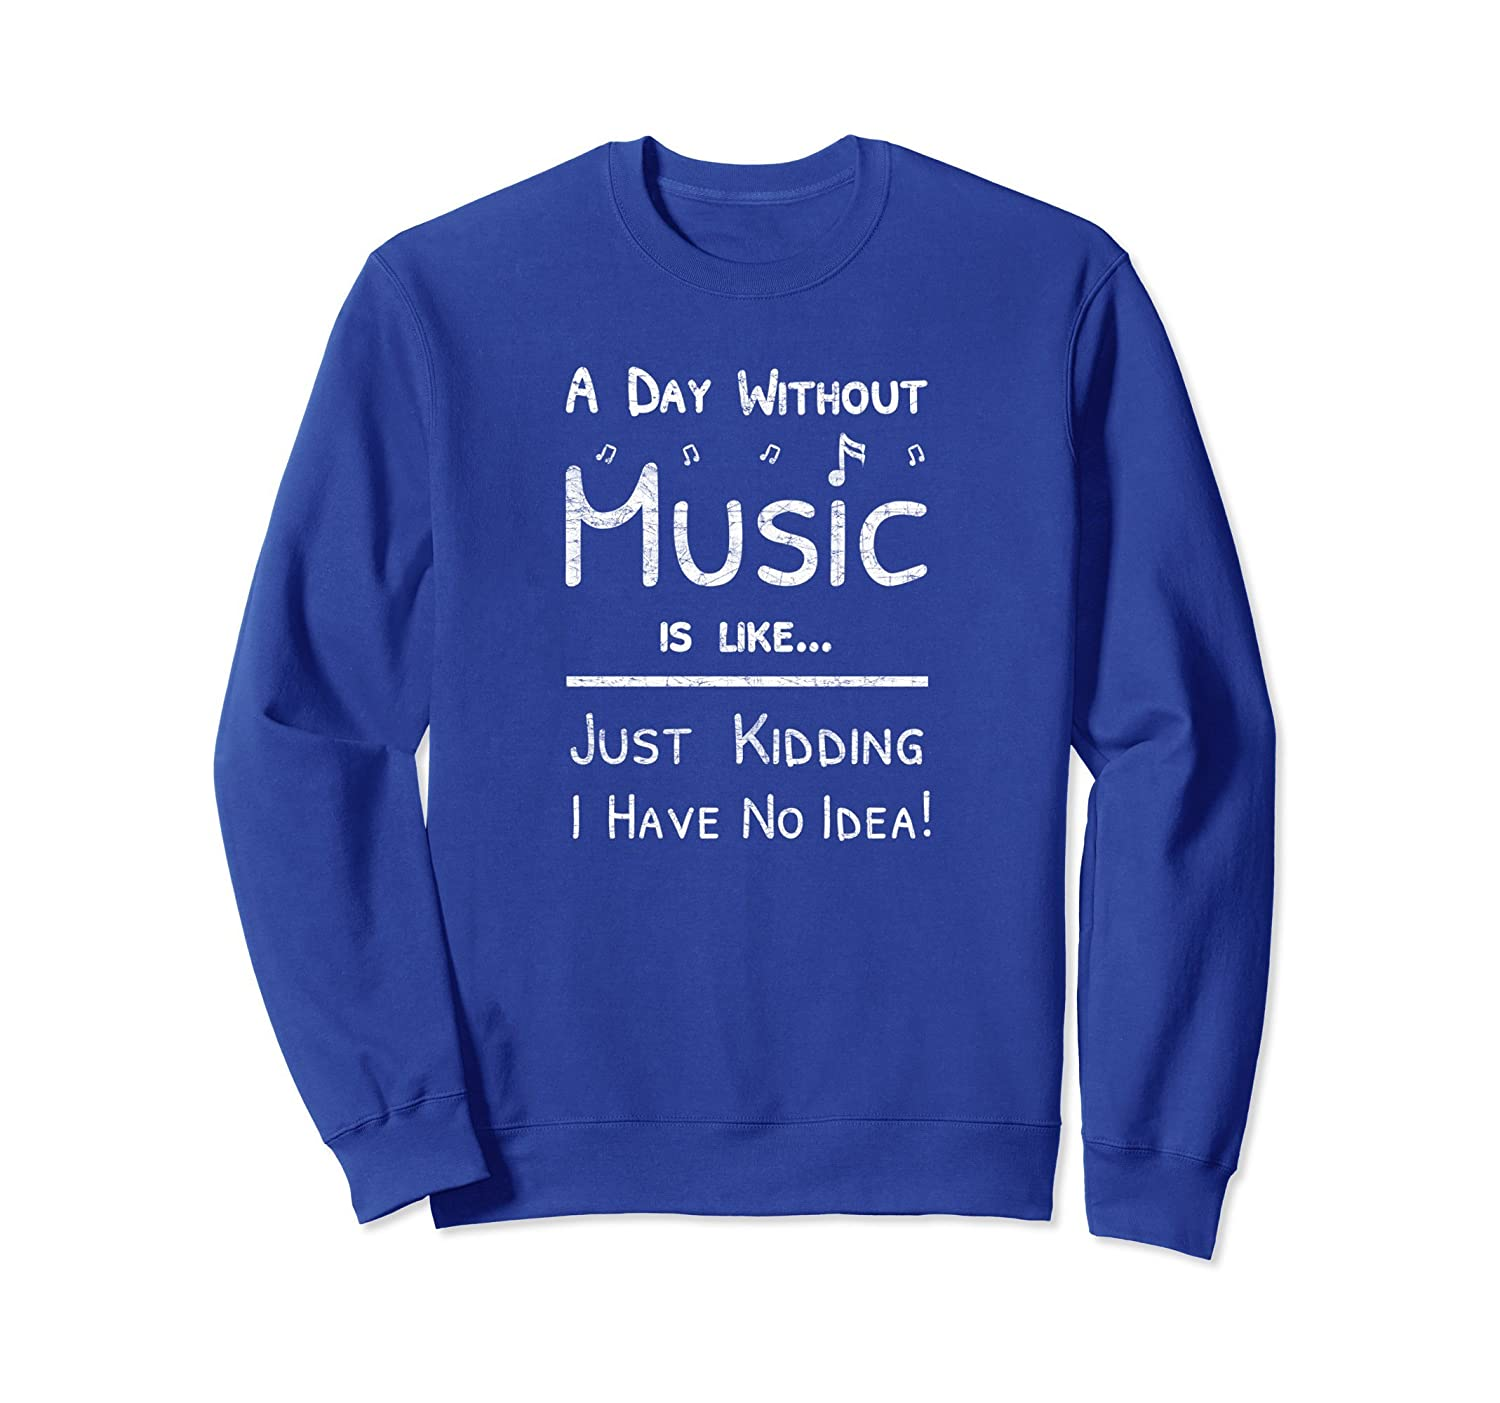 A Day Without Music Sweatshirt for Teen Boys Girls-TH